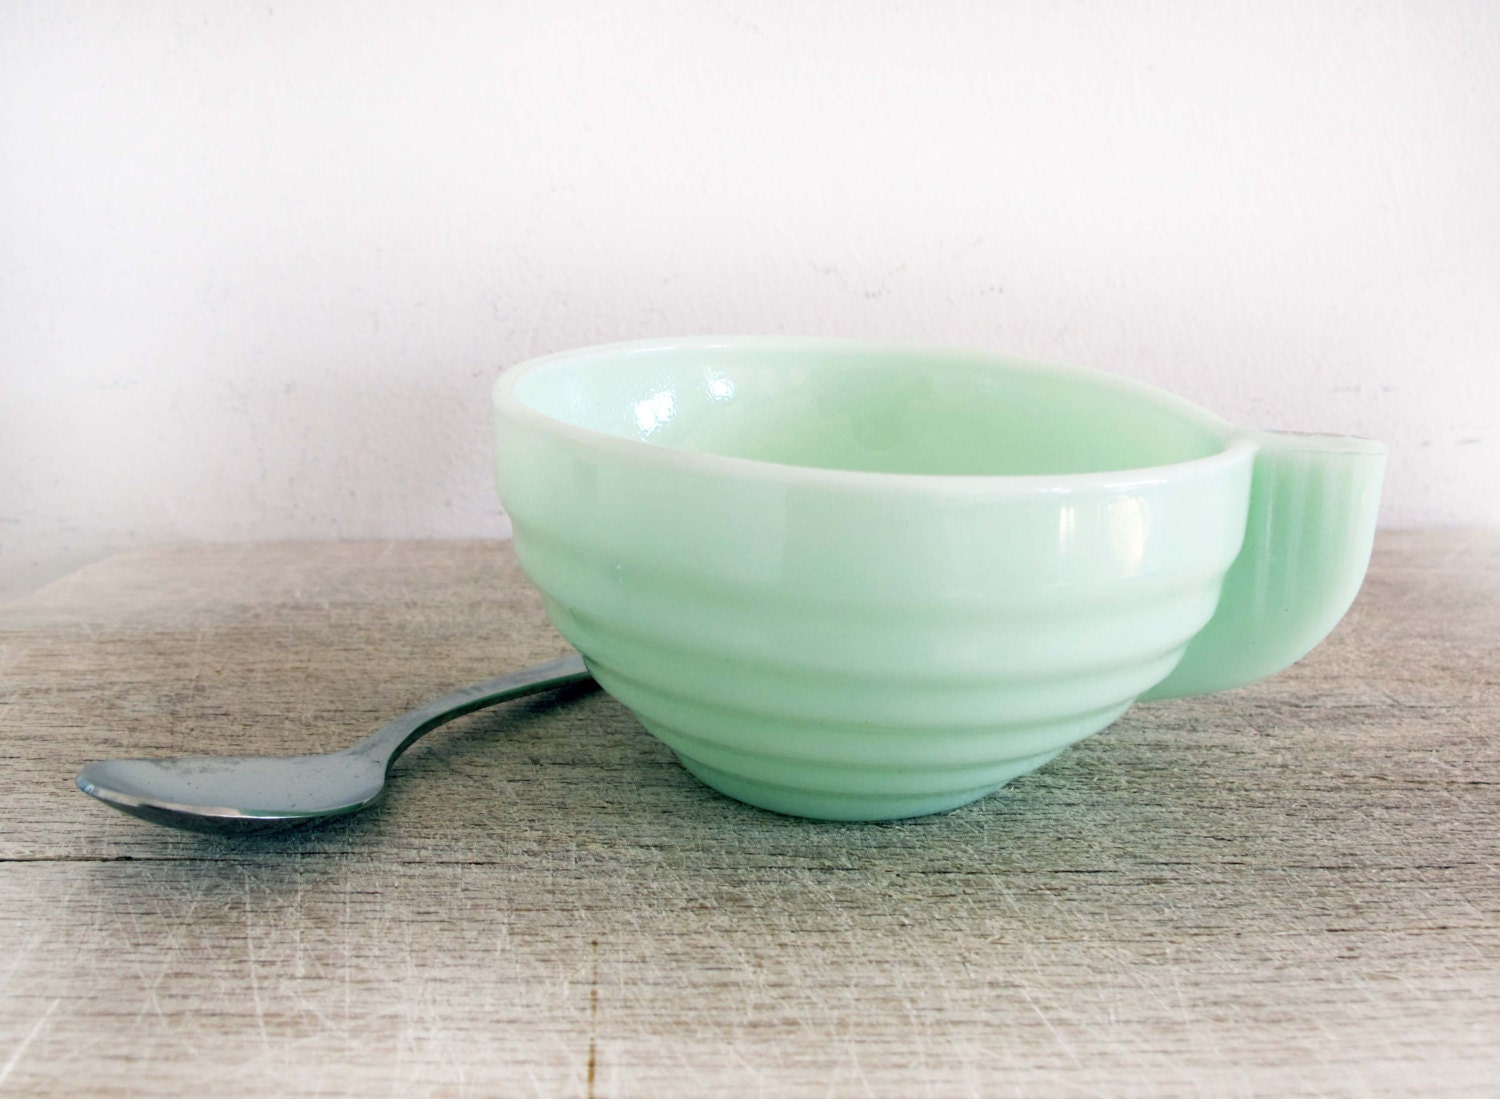 Fench kitchen: 1930's Jadeite Cup, coffee cup or tea cup, jadeite glass, jadite, Art Deco - FrenchMelody